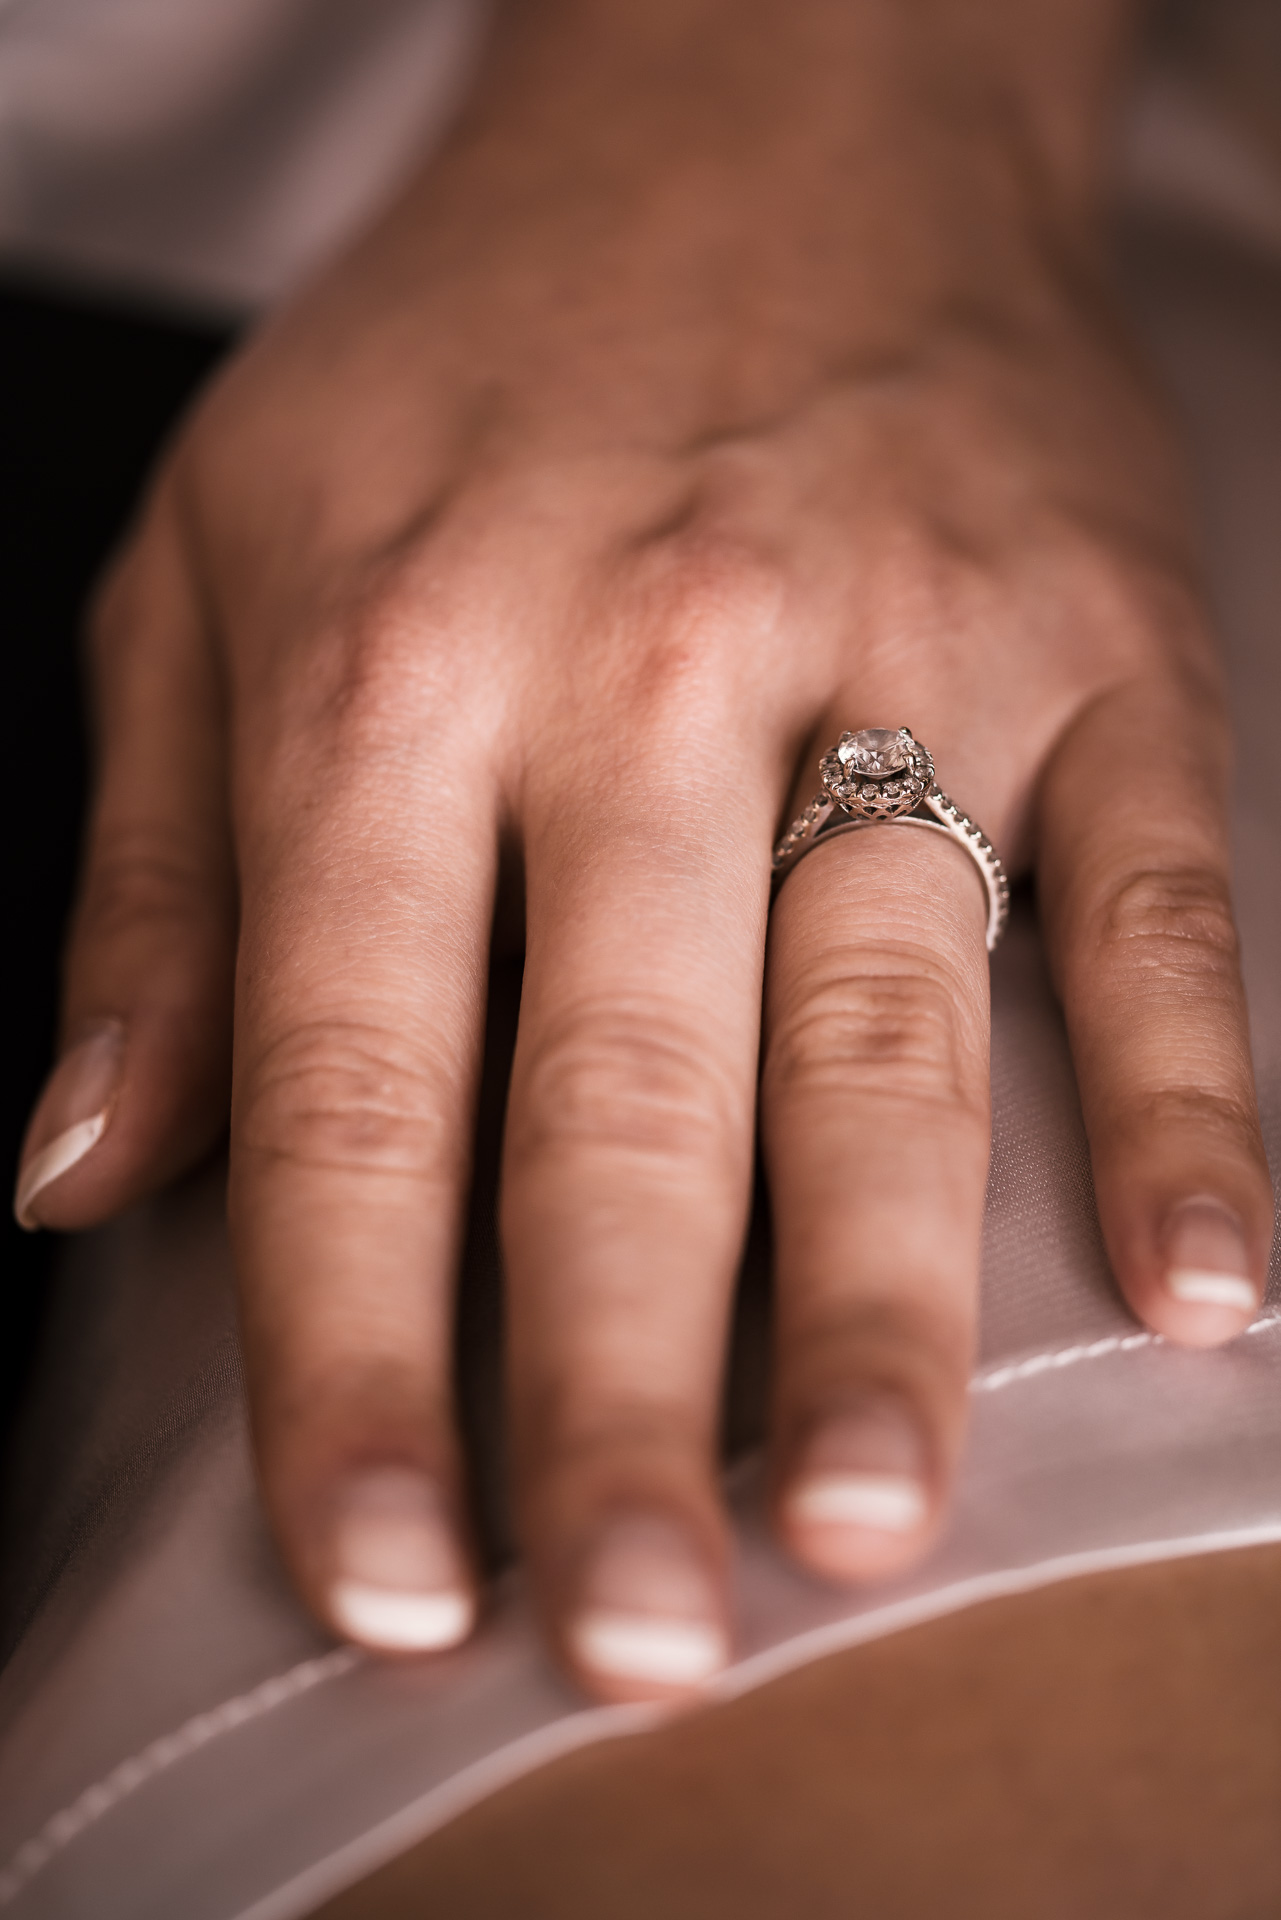 Engagement ring on brides finger before wedding at the Twin Oaks Golf course in san marcos, San diegos premier wedding venue